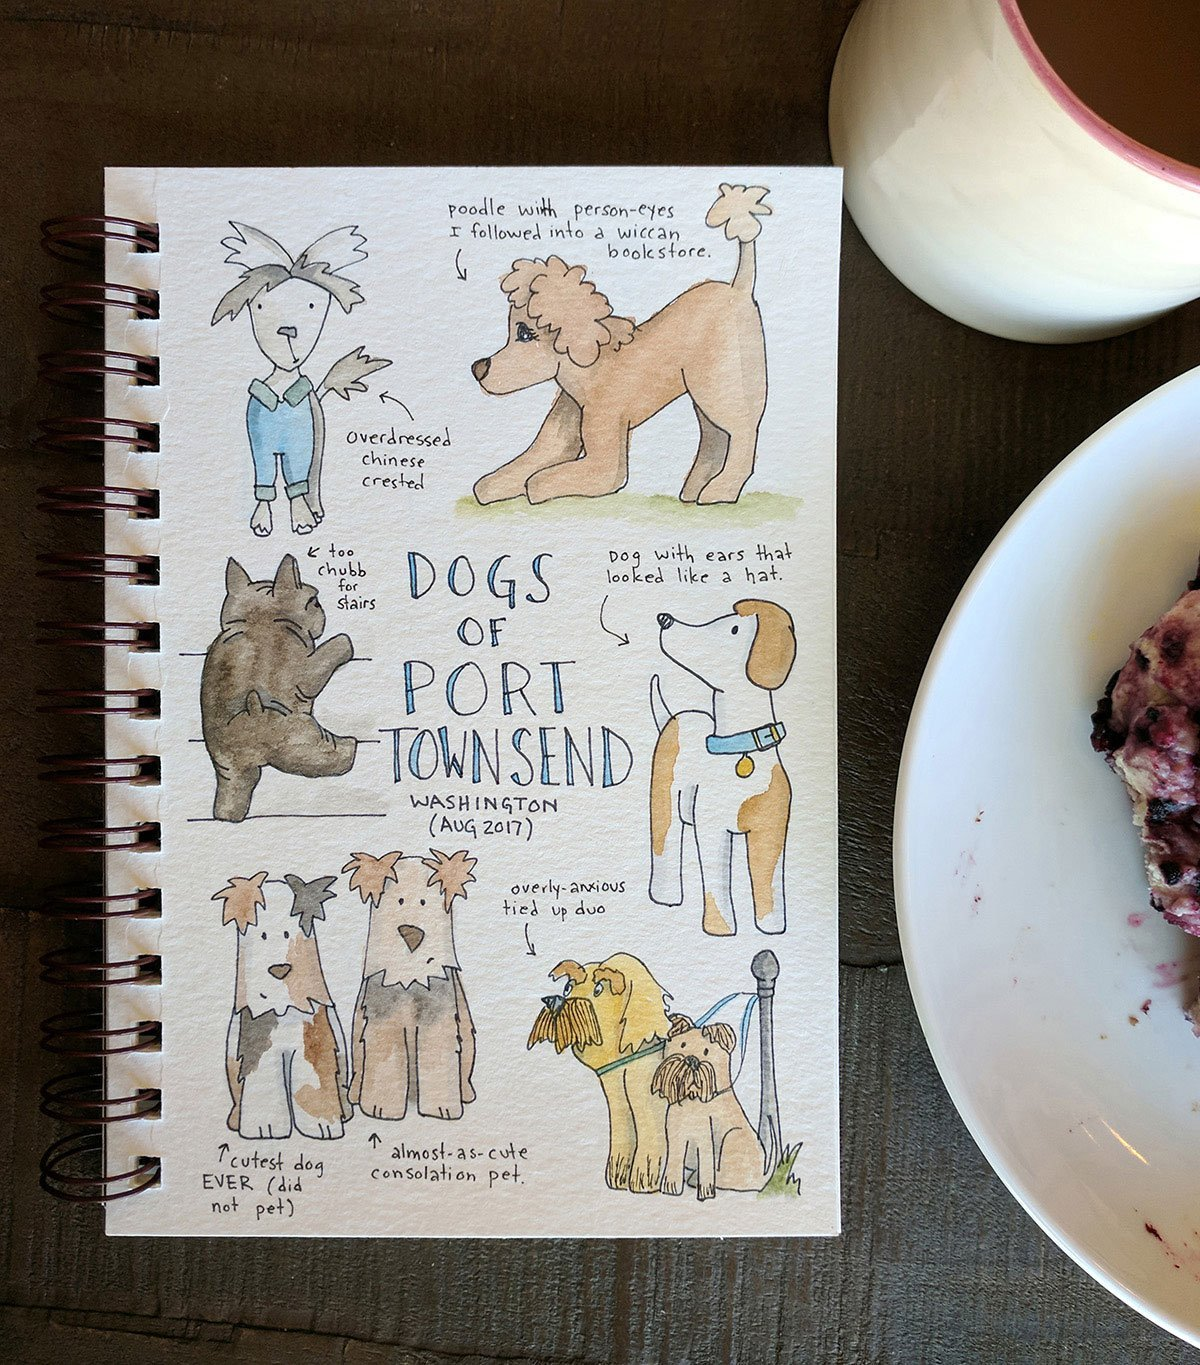 Doodle of dogs of port townsend from my travel journal